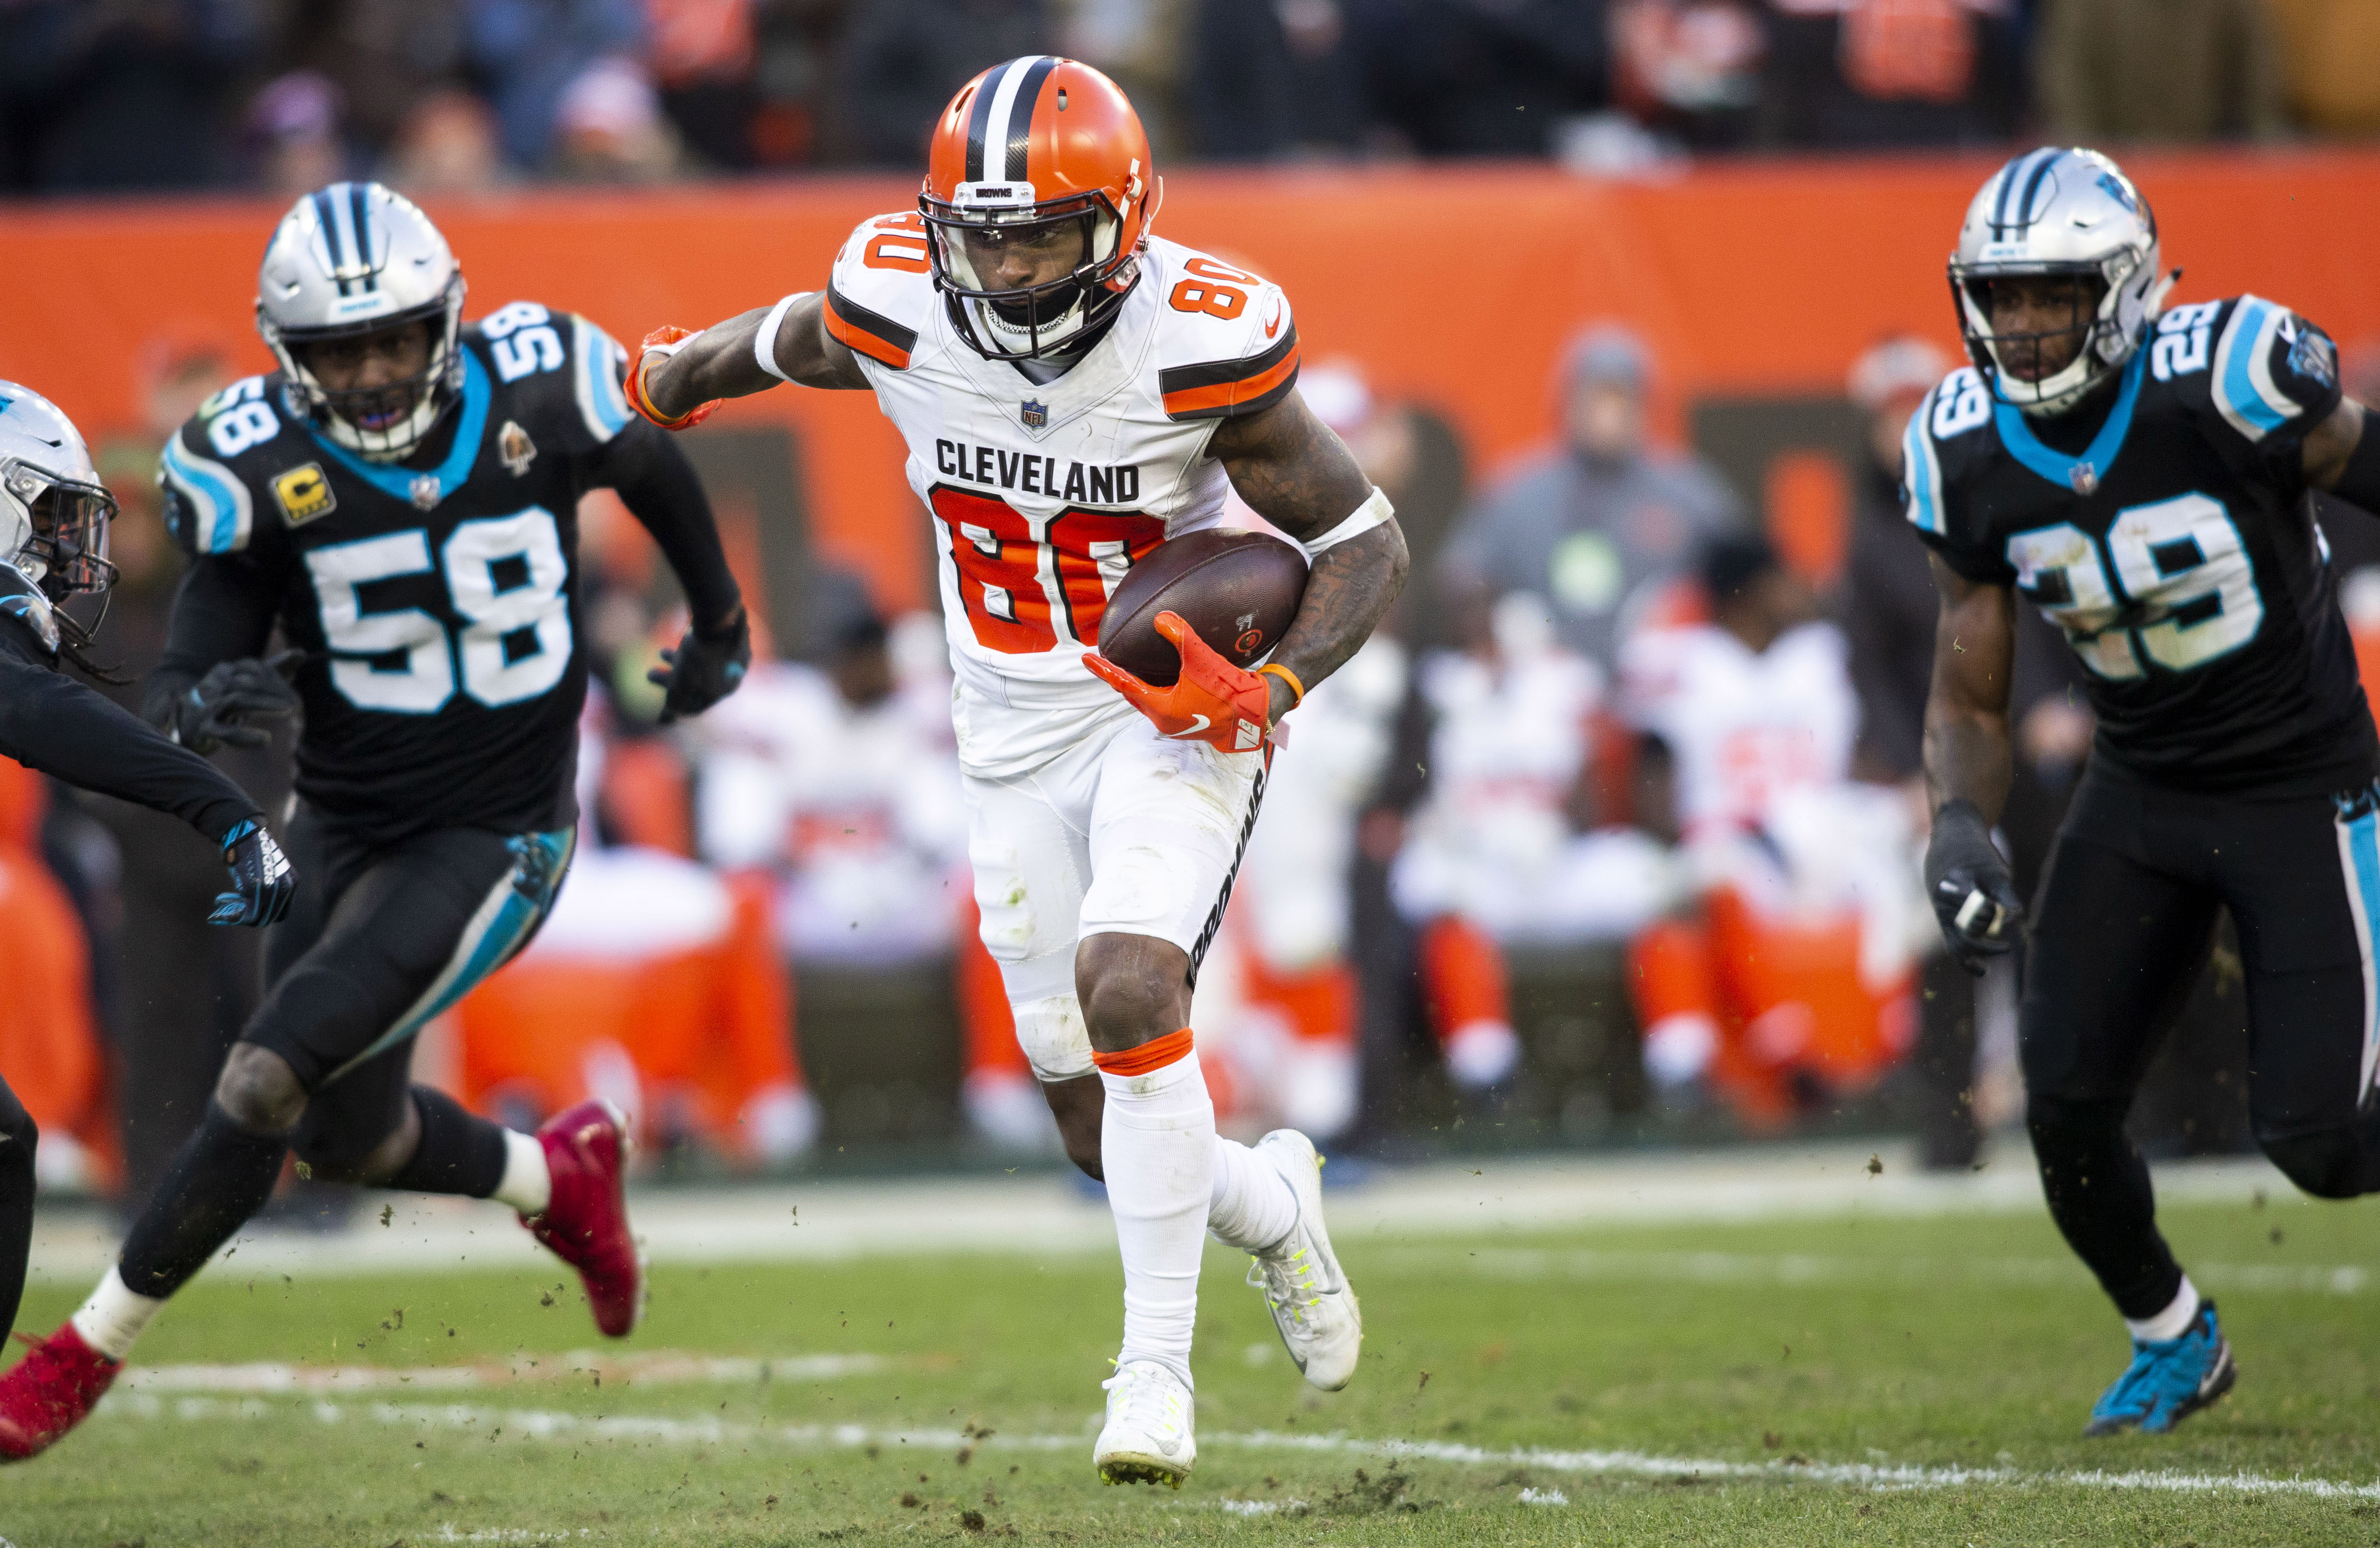 Panthers' collapse continues with late miscues in loss to Browns